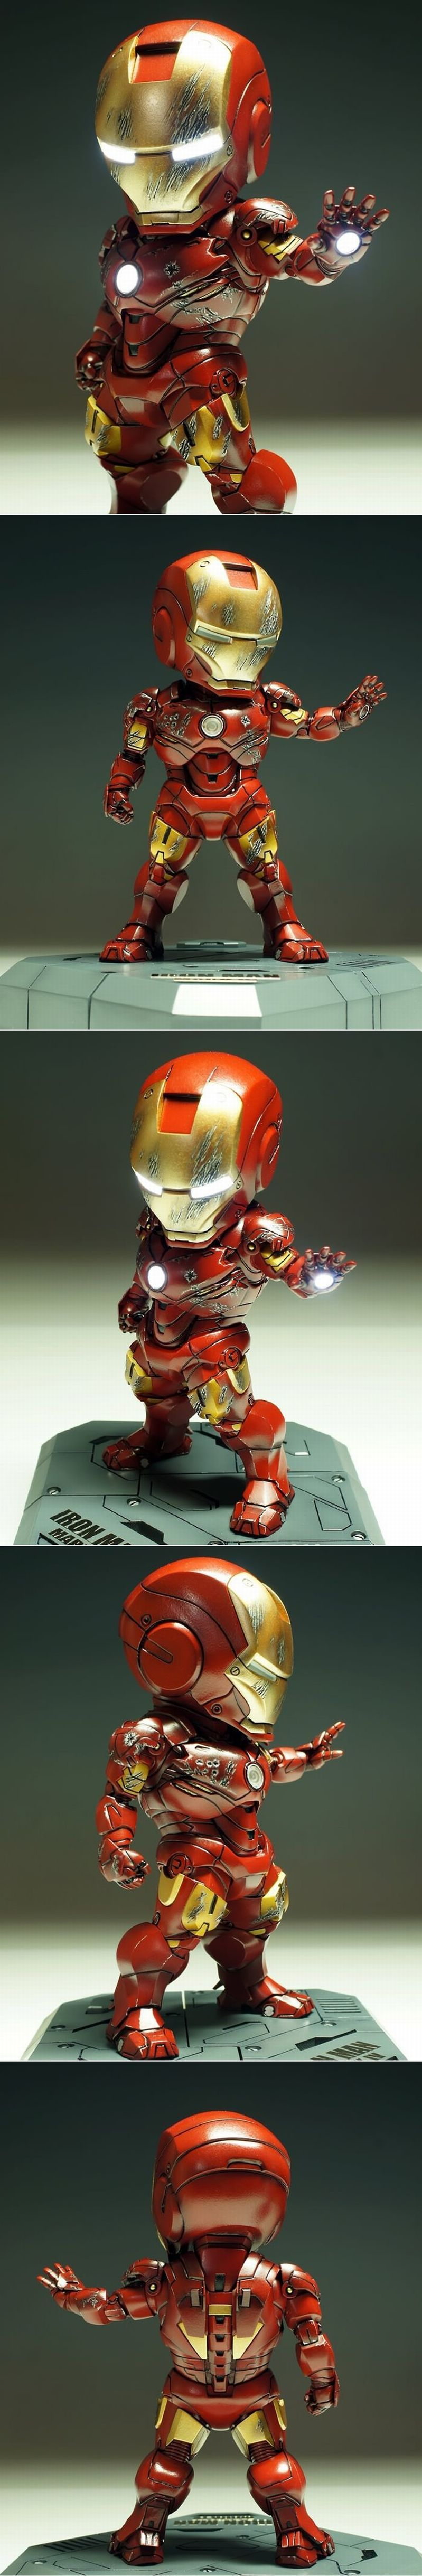 figurine-iron-man-chibi